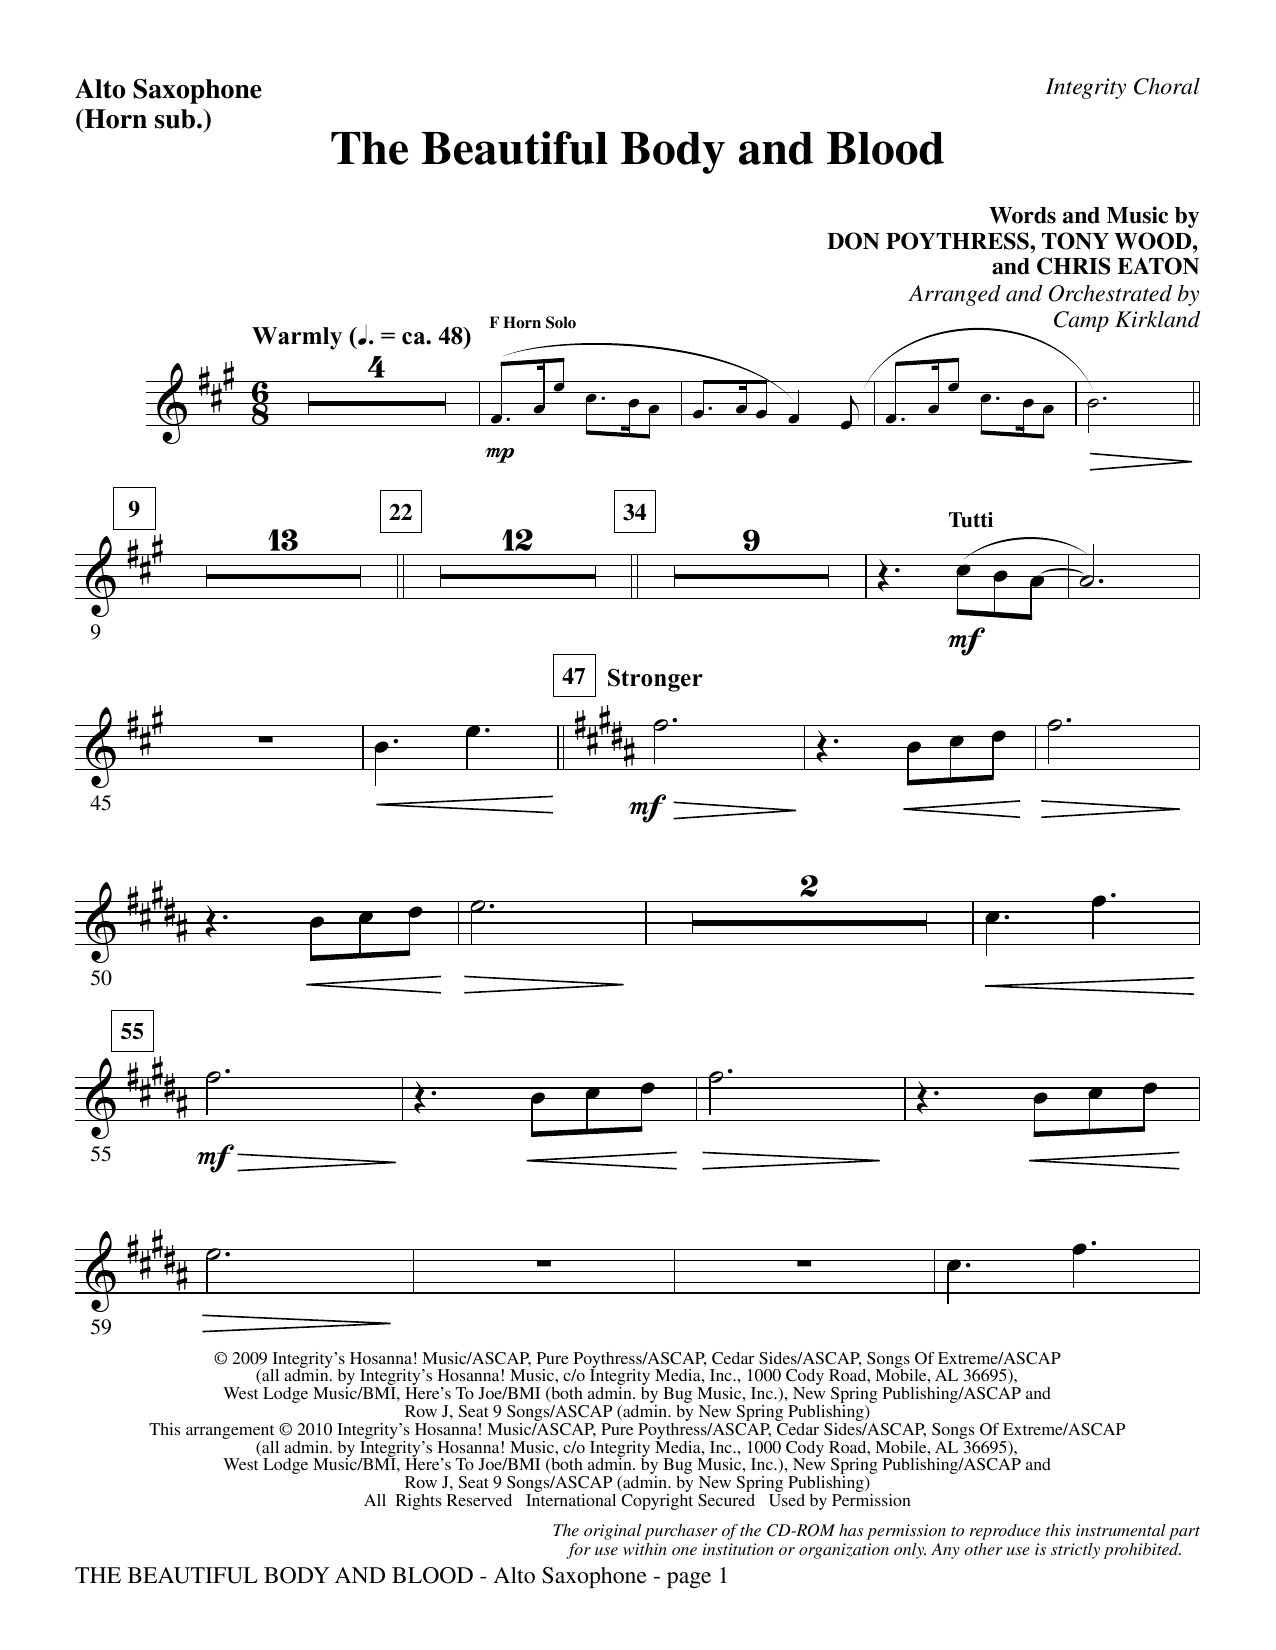 Camp Kirkland The Beautiful Body And Blood - Alto Sax (sub. Horn) sheet music notes and chords. Download Printable PDF.